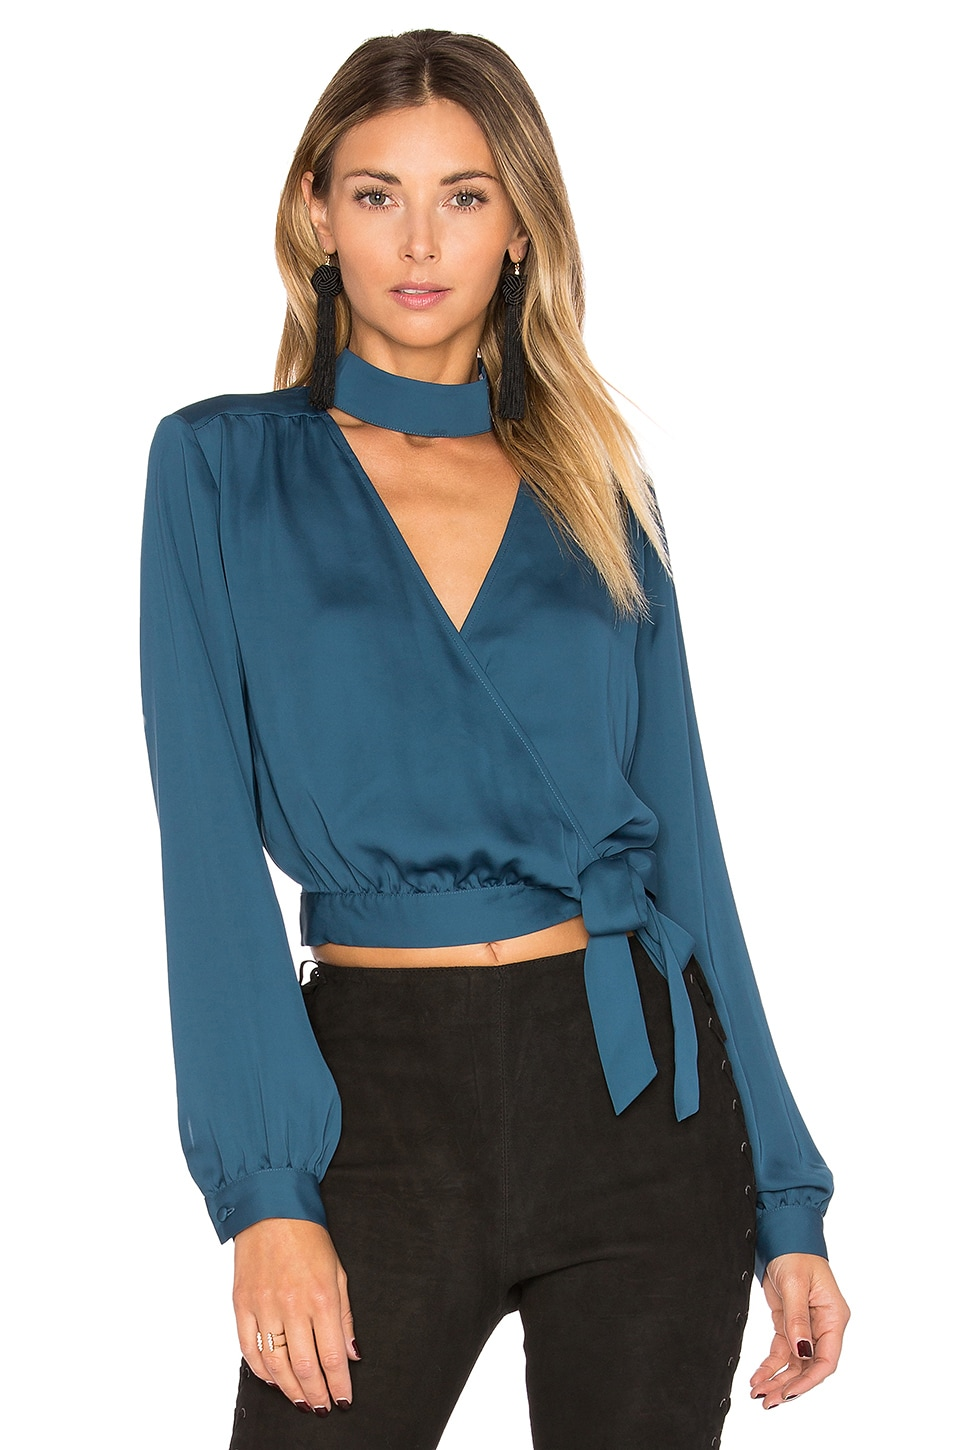 The High Collar Wrap by L'Academie